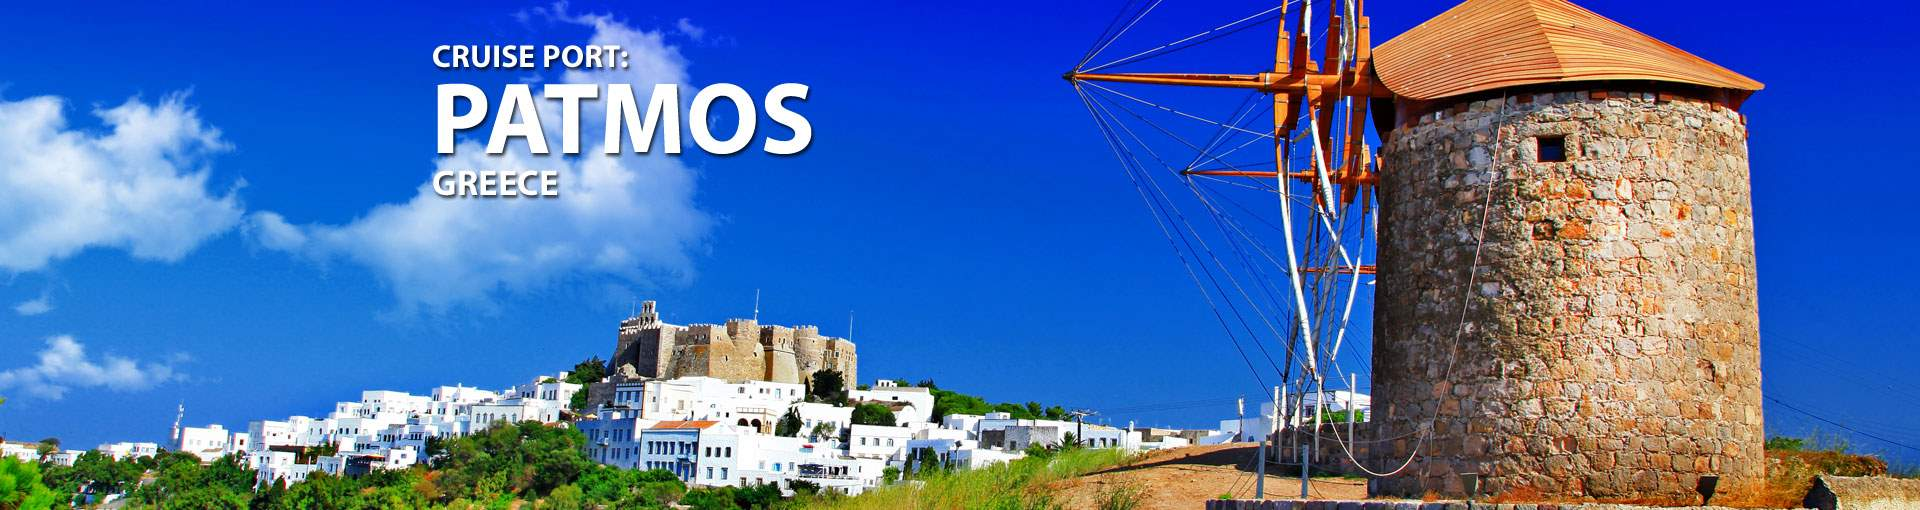 Cruises to Patmos, Greece